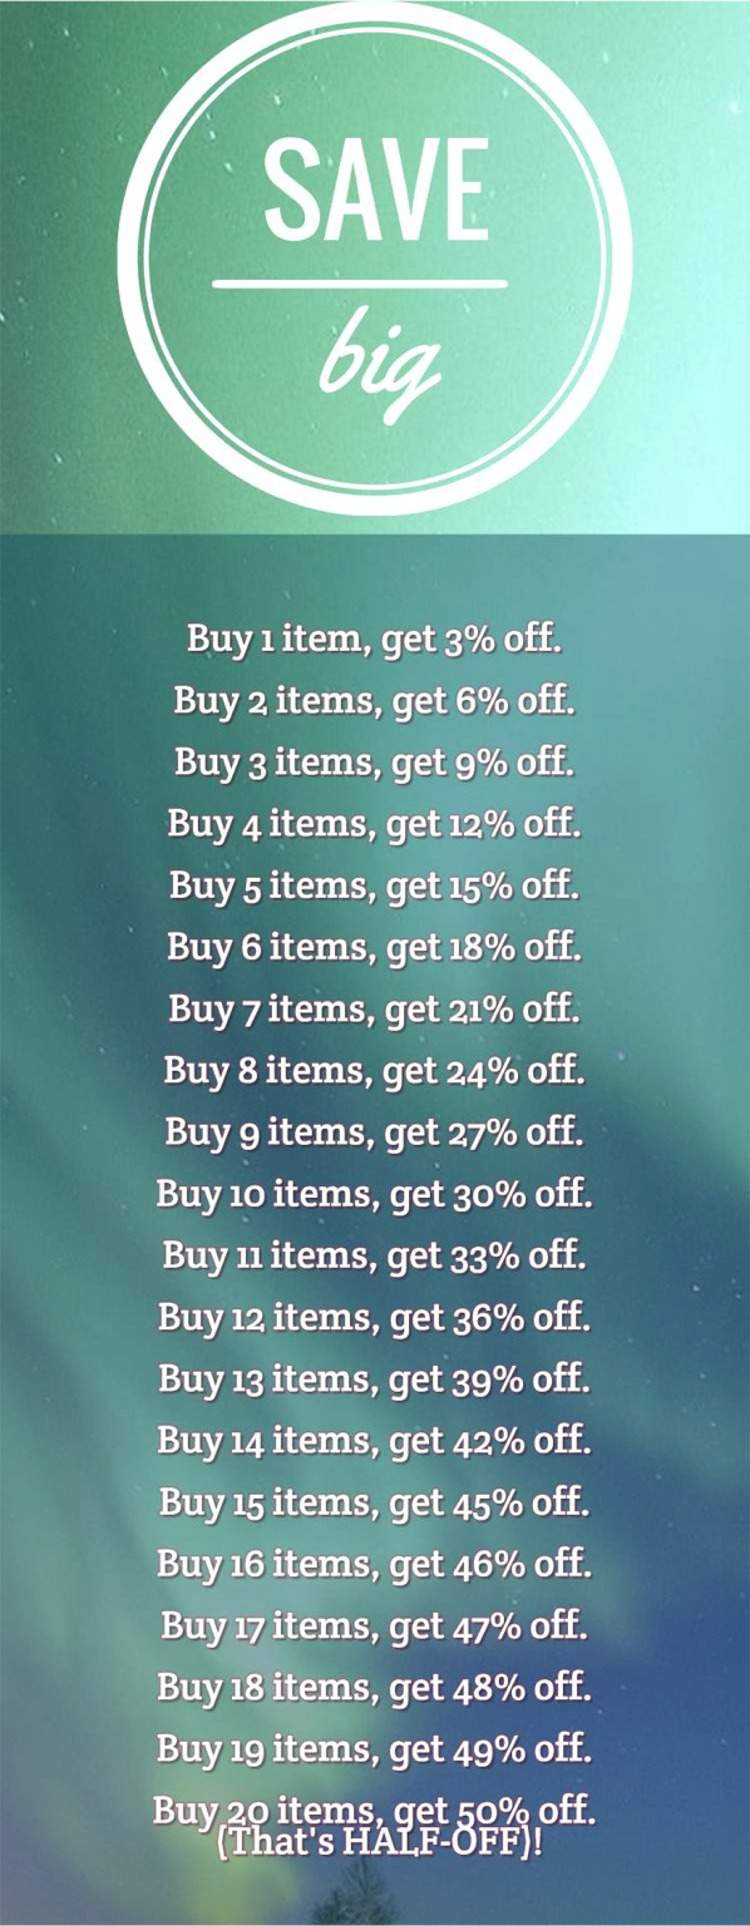 The more you buy, the more you save.